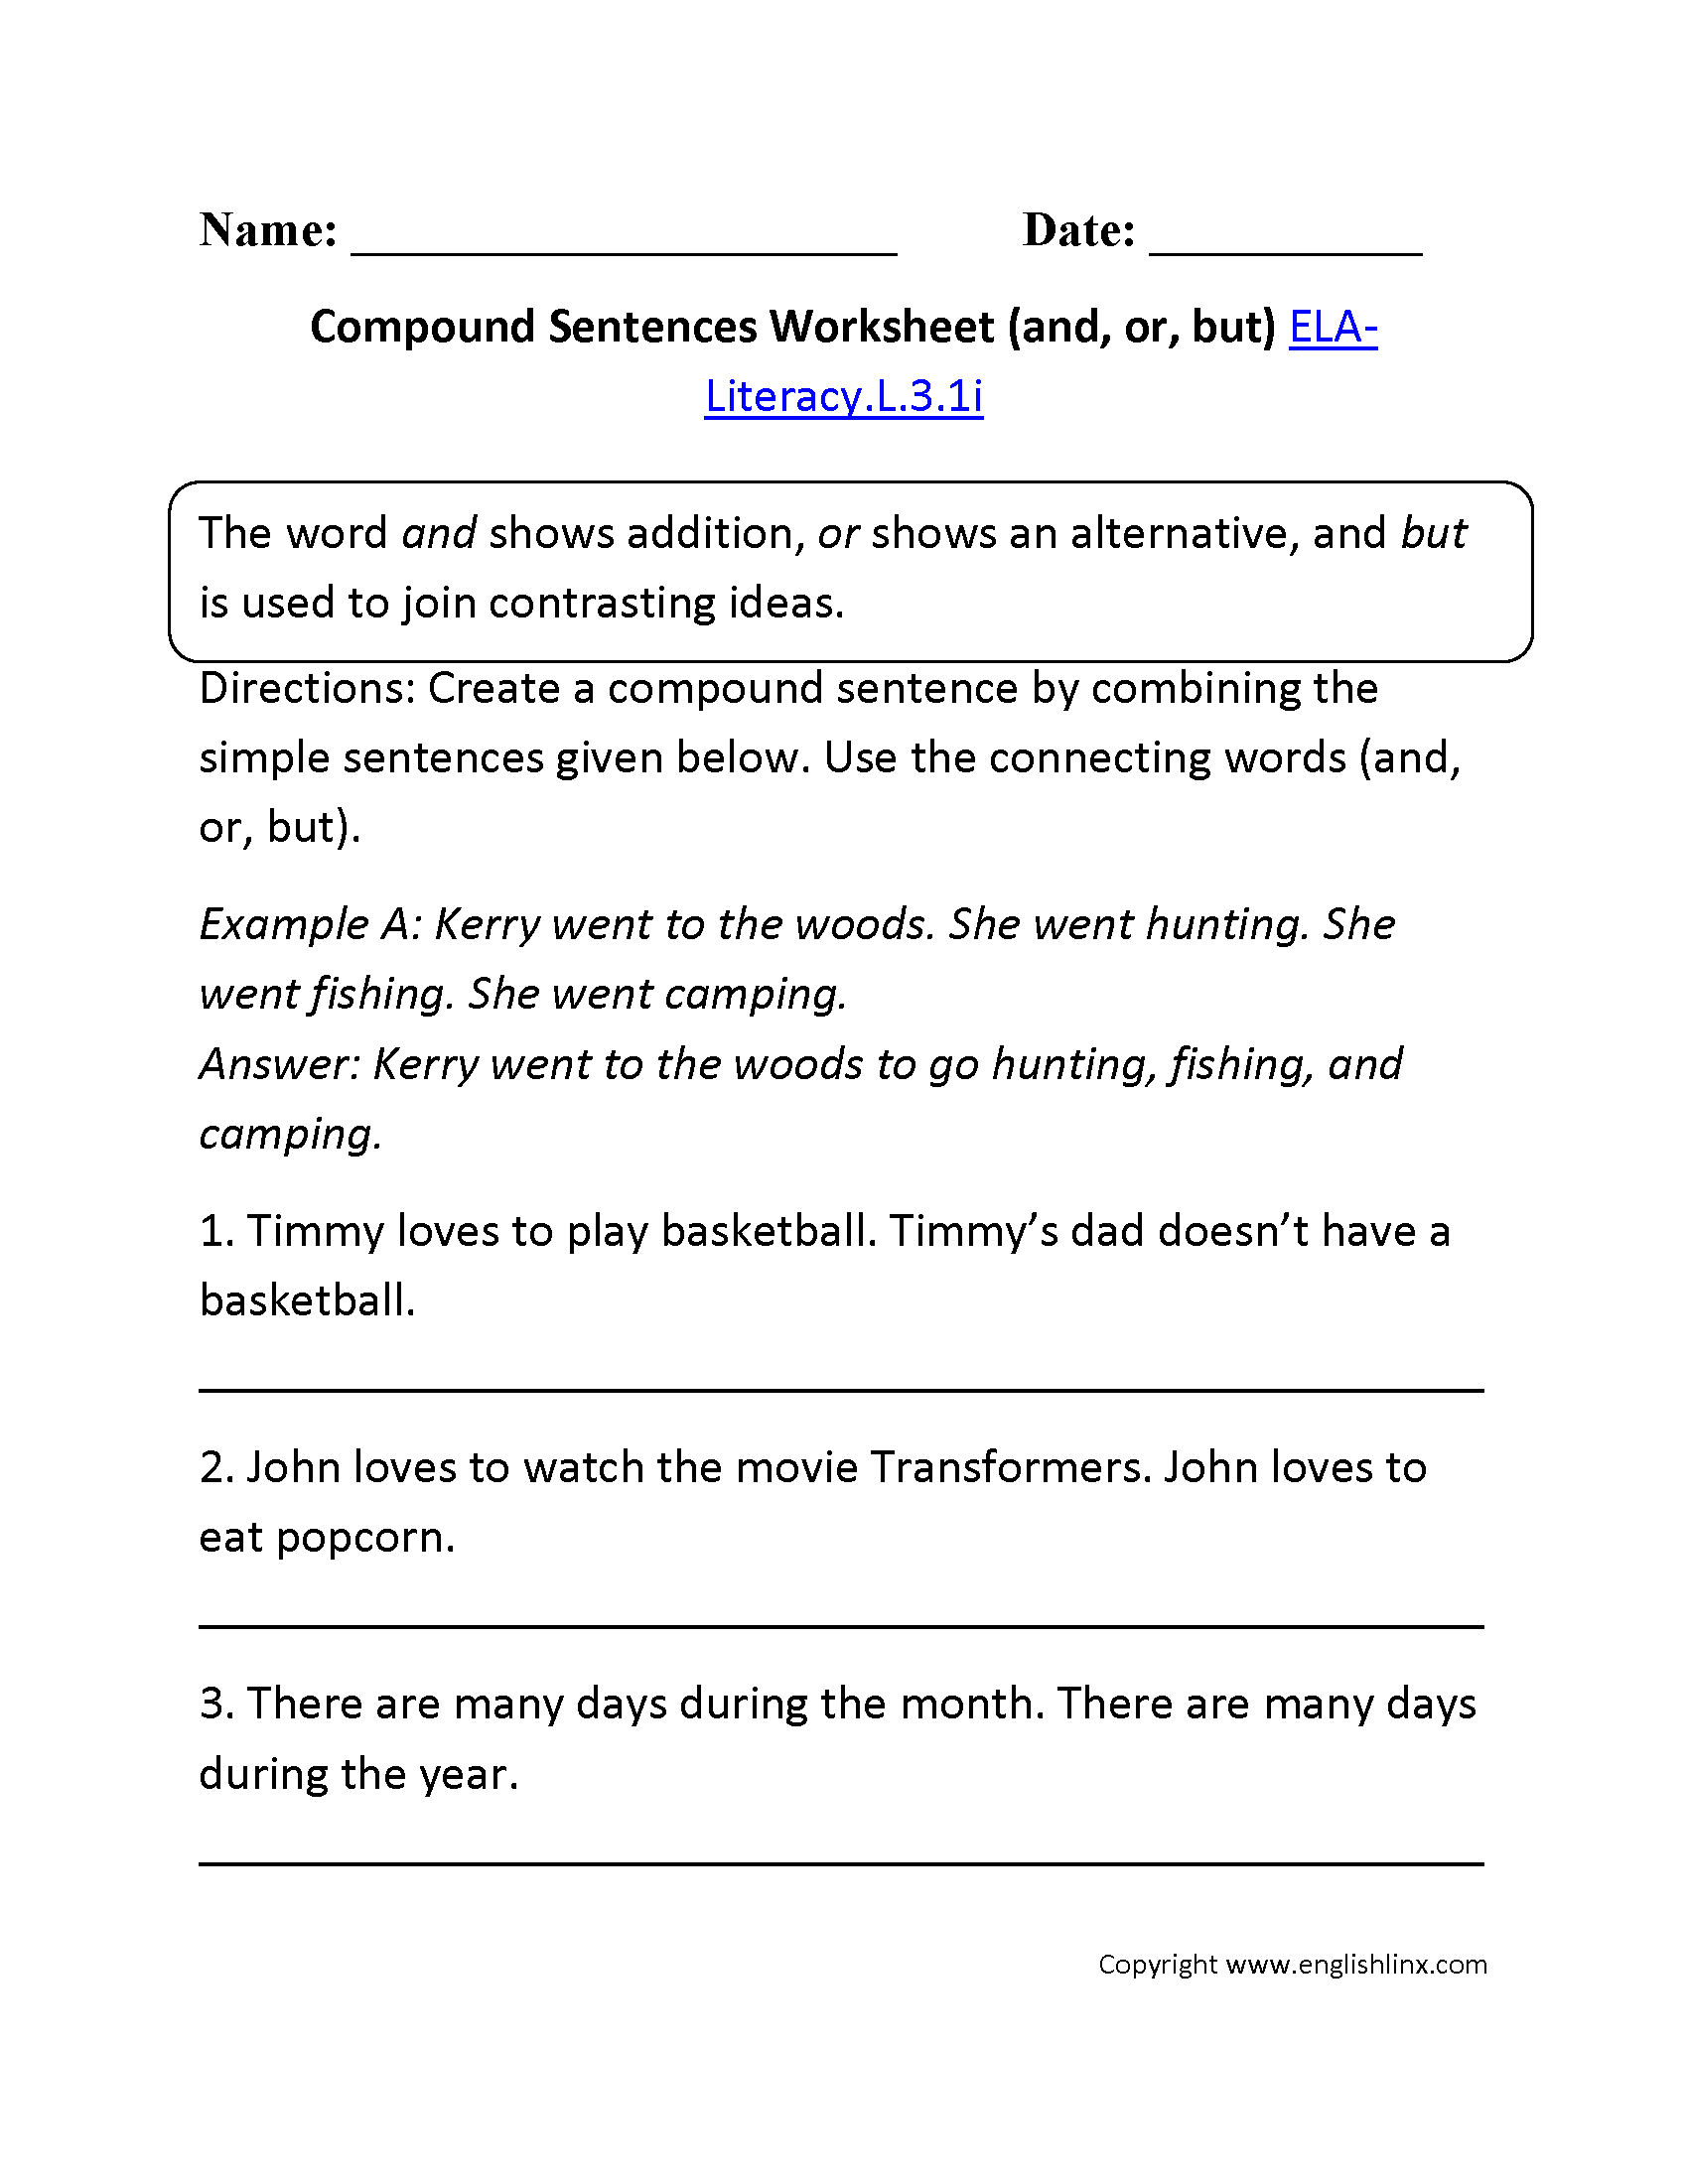 Compound Sentence Worksheet 1 L 3 1